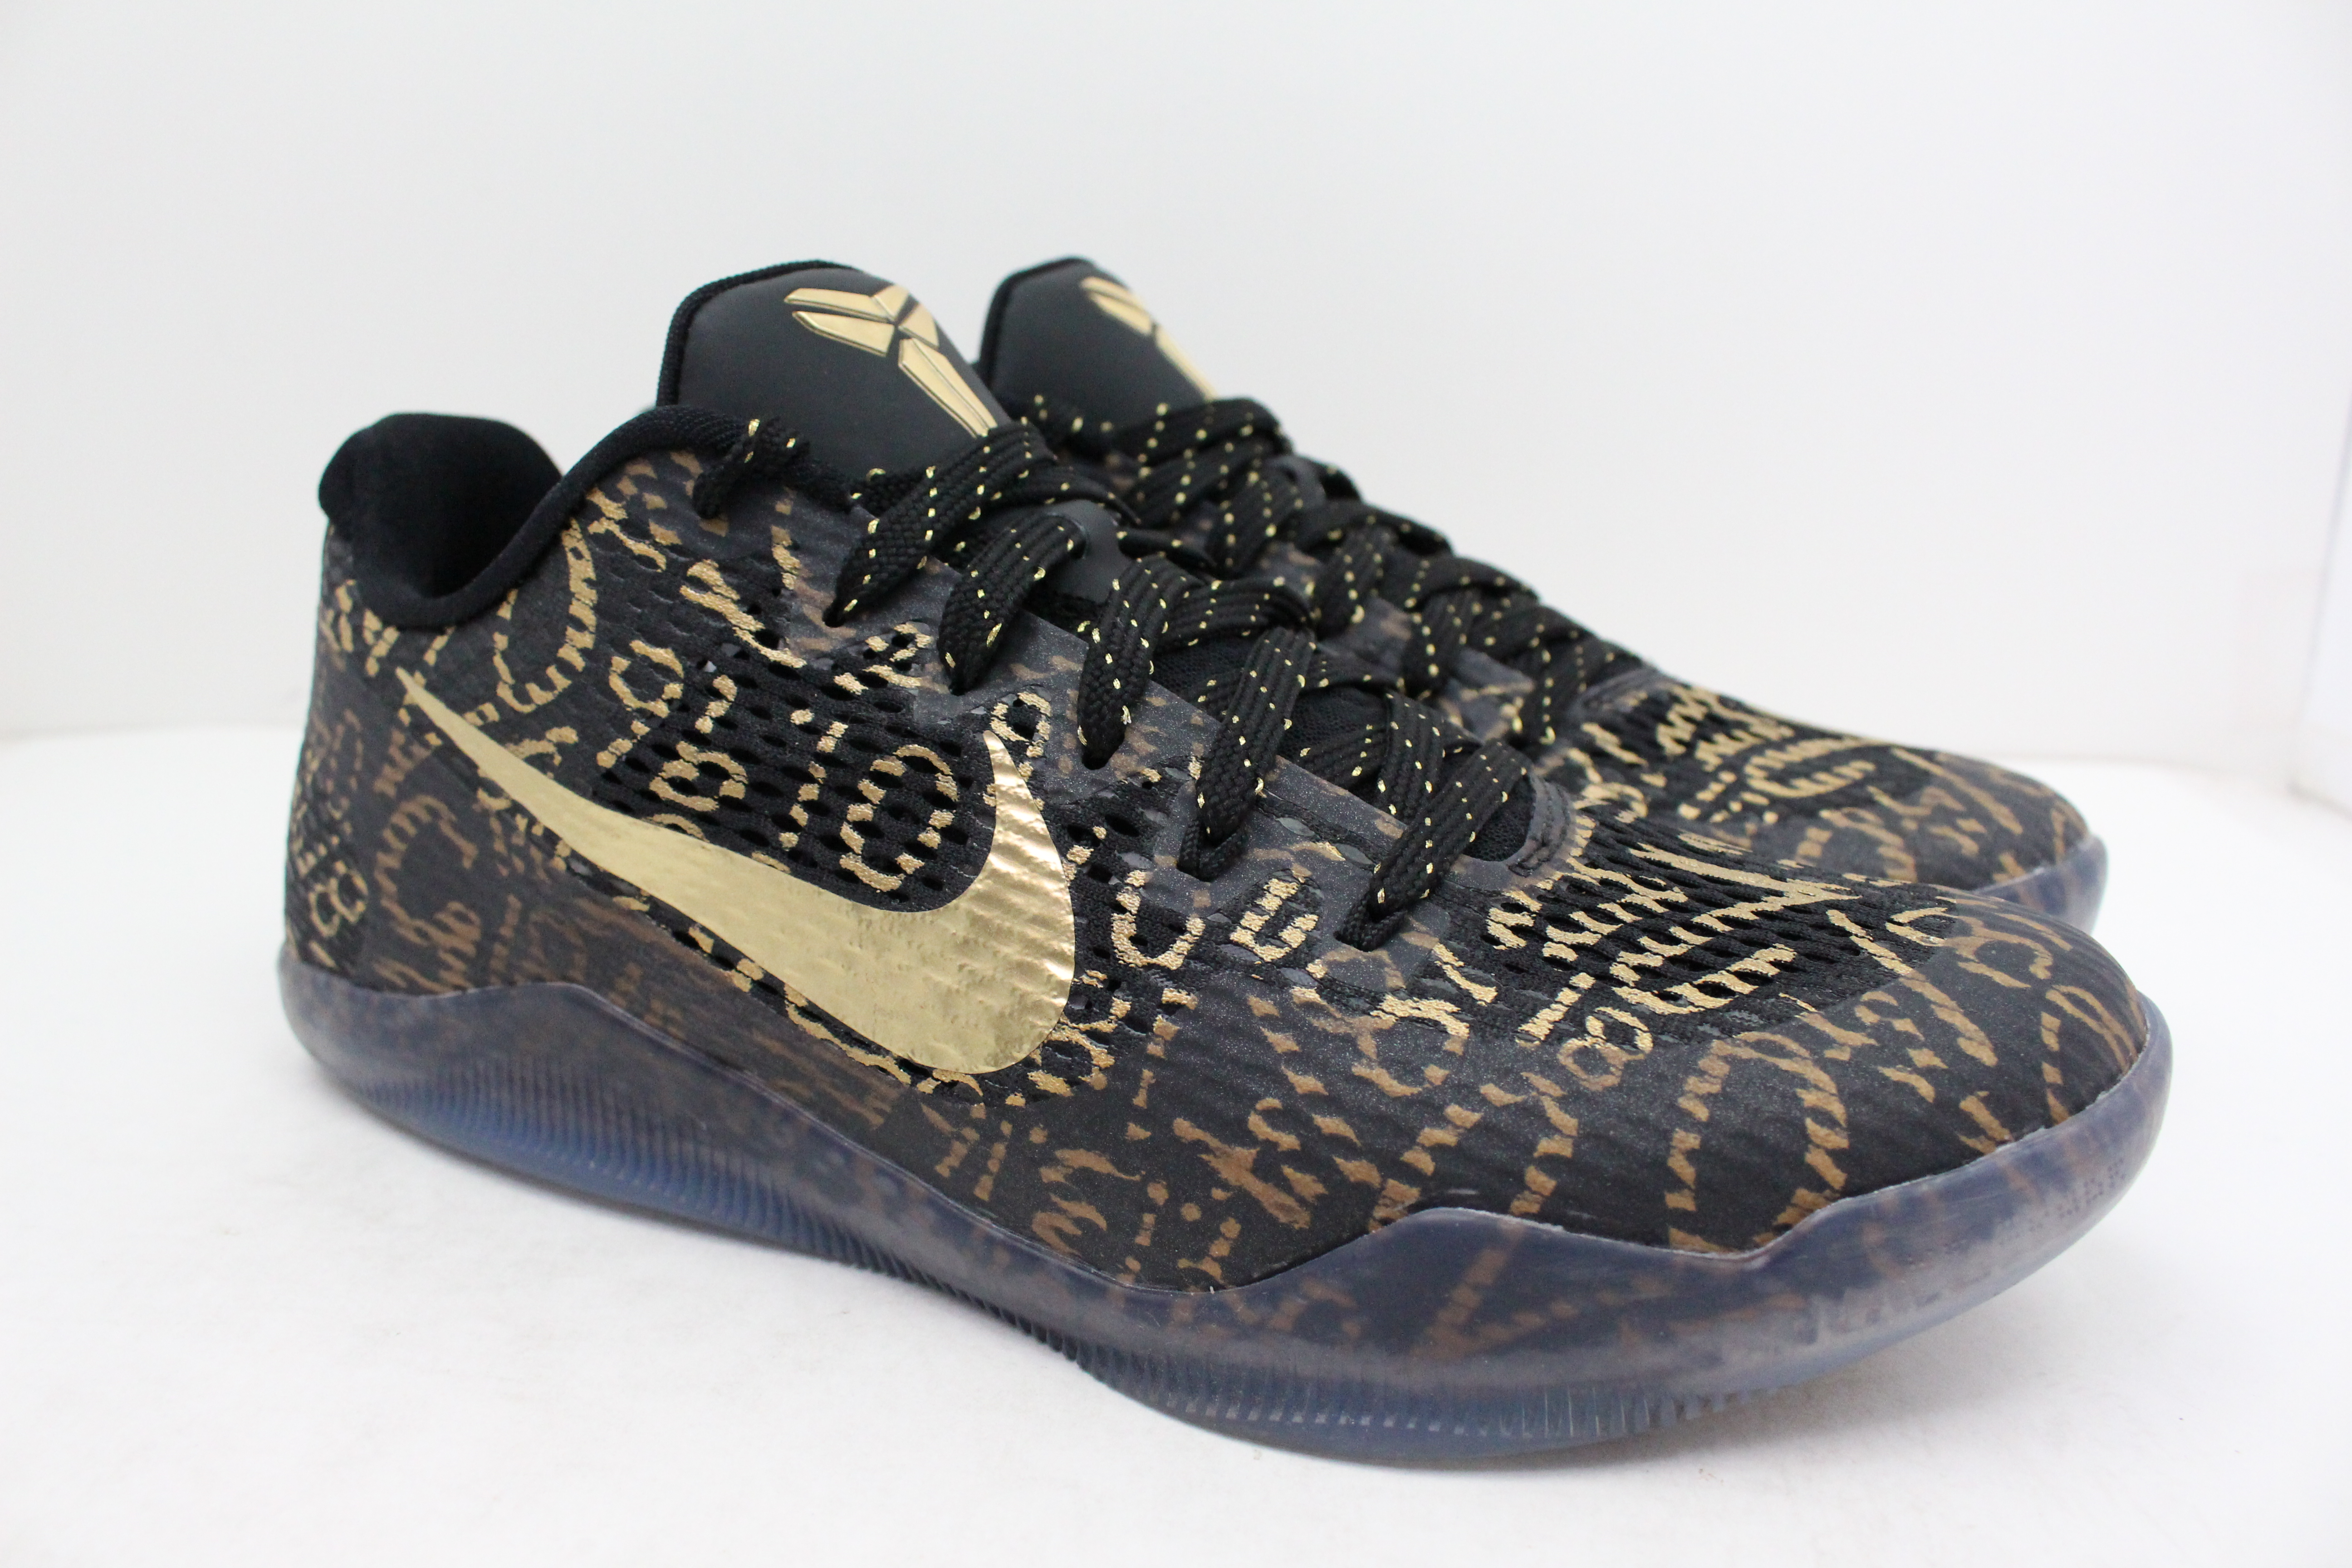 964ce15b9945 Nike Nike Kobe 11 Low Mamba Day ID Size 9.5 - Low-Top Sneakers for ...